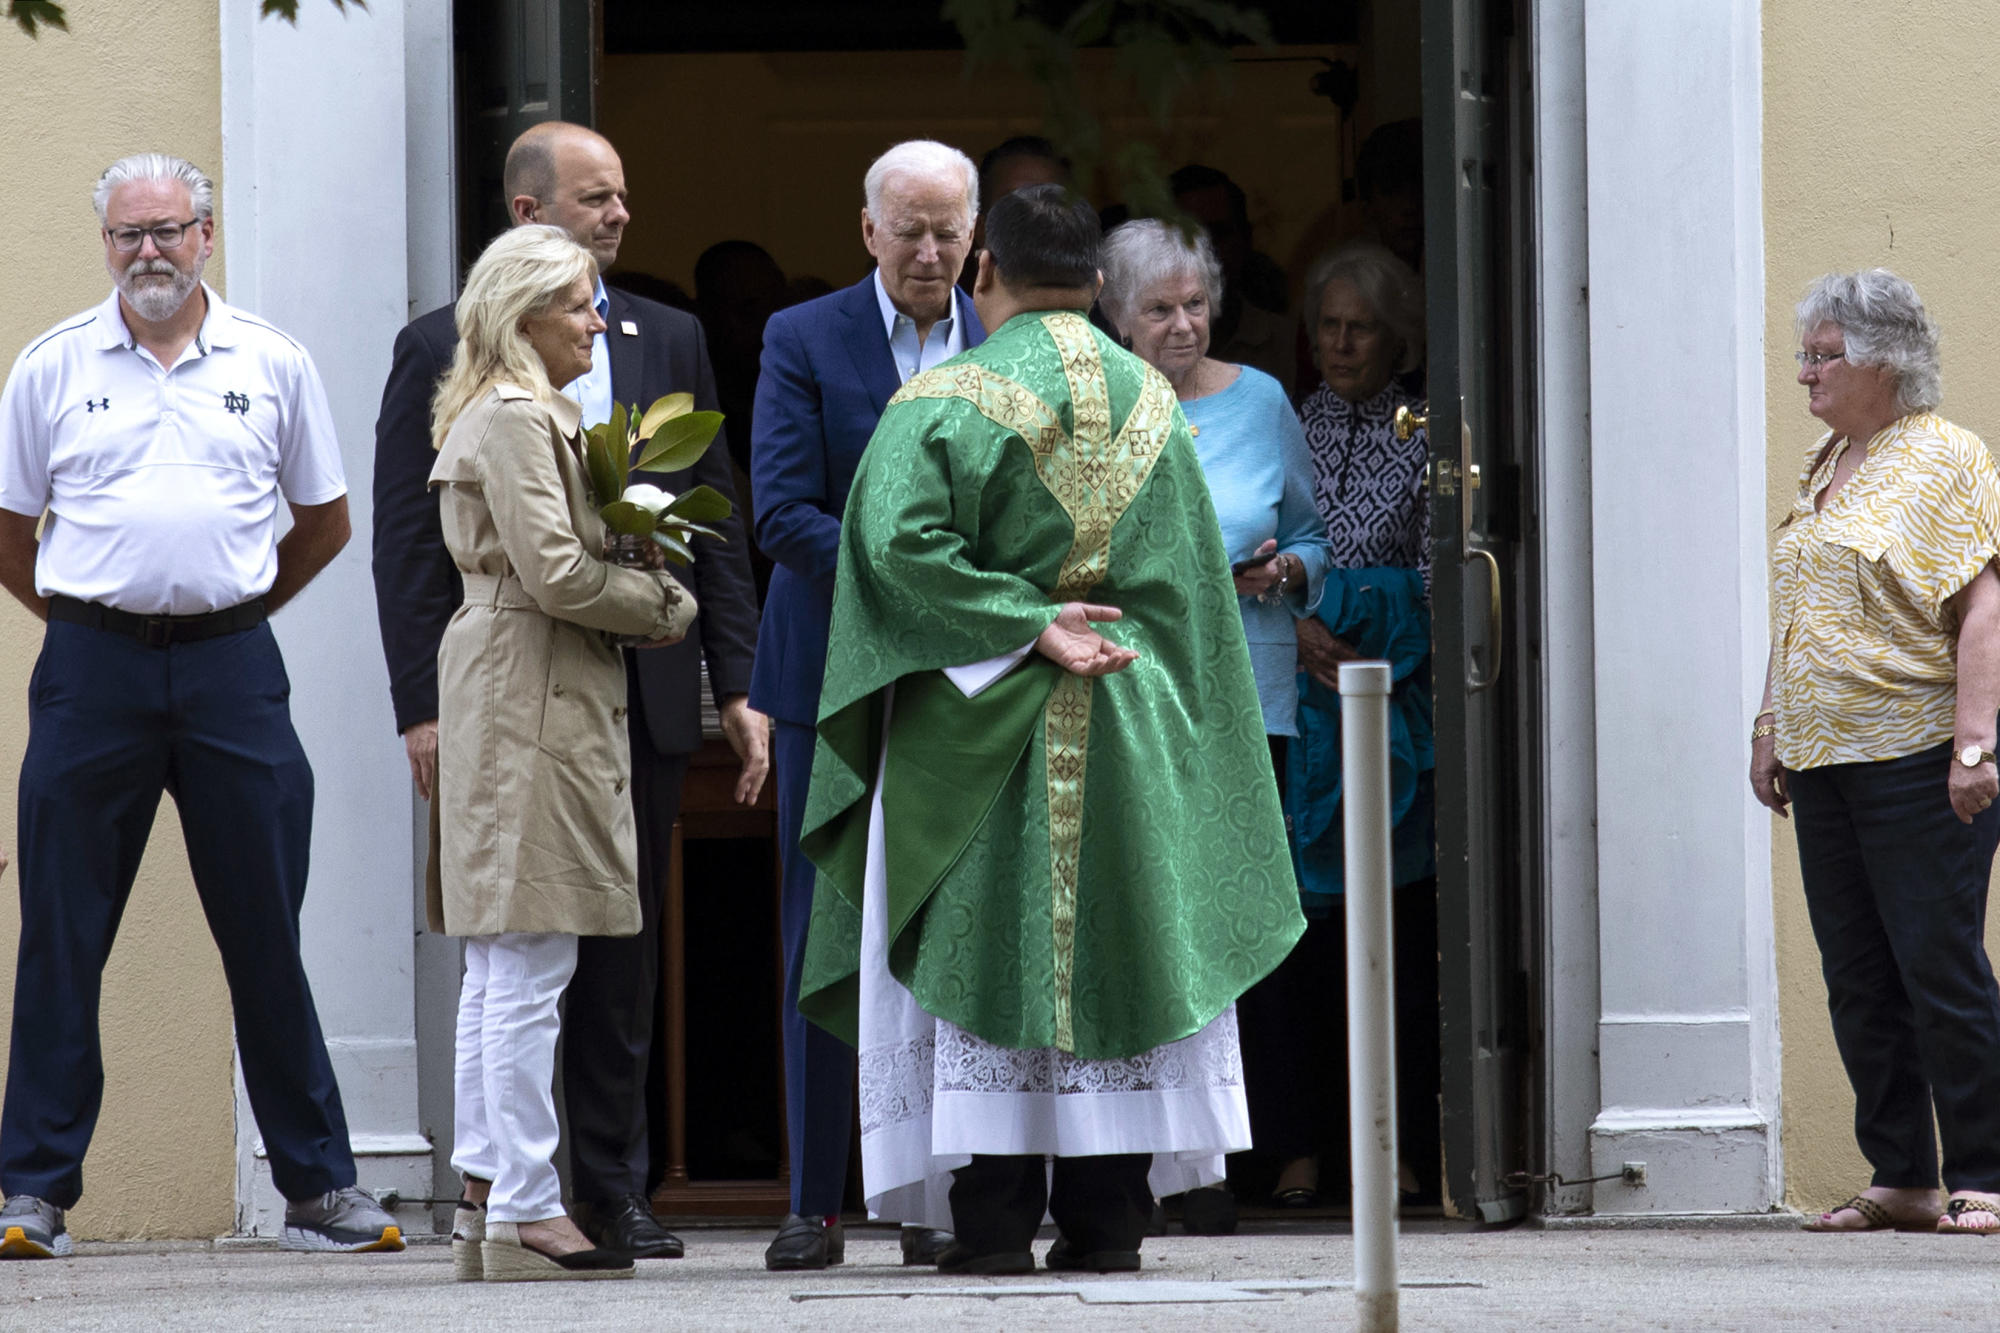 In Rift With Biden a Dramatic Show of Force by a Conservative Catholic Movement – Yahoo News